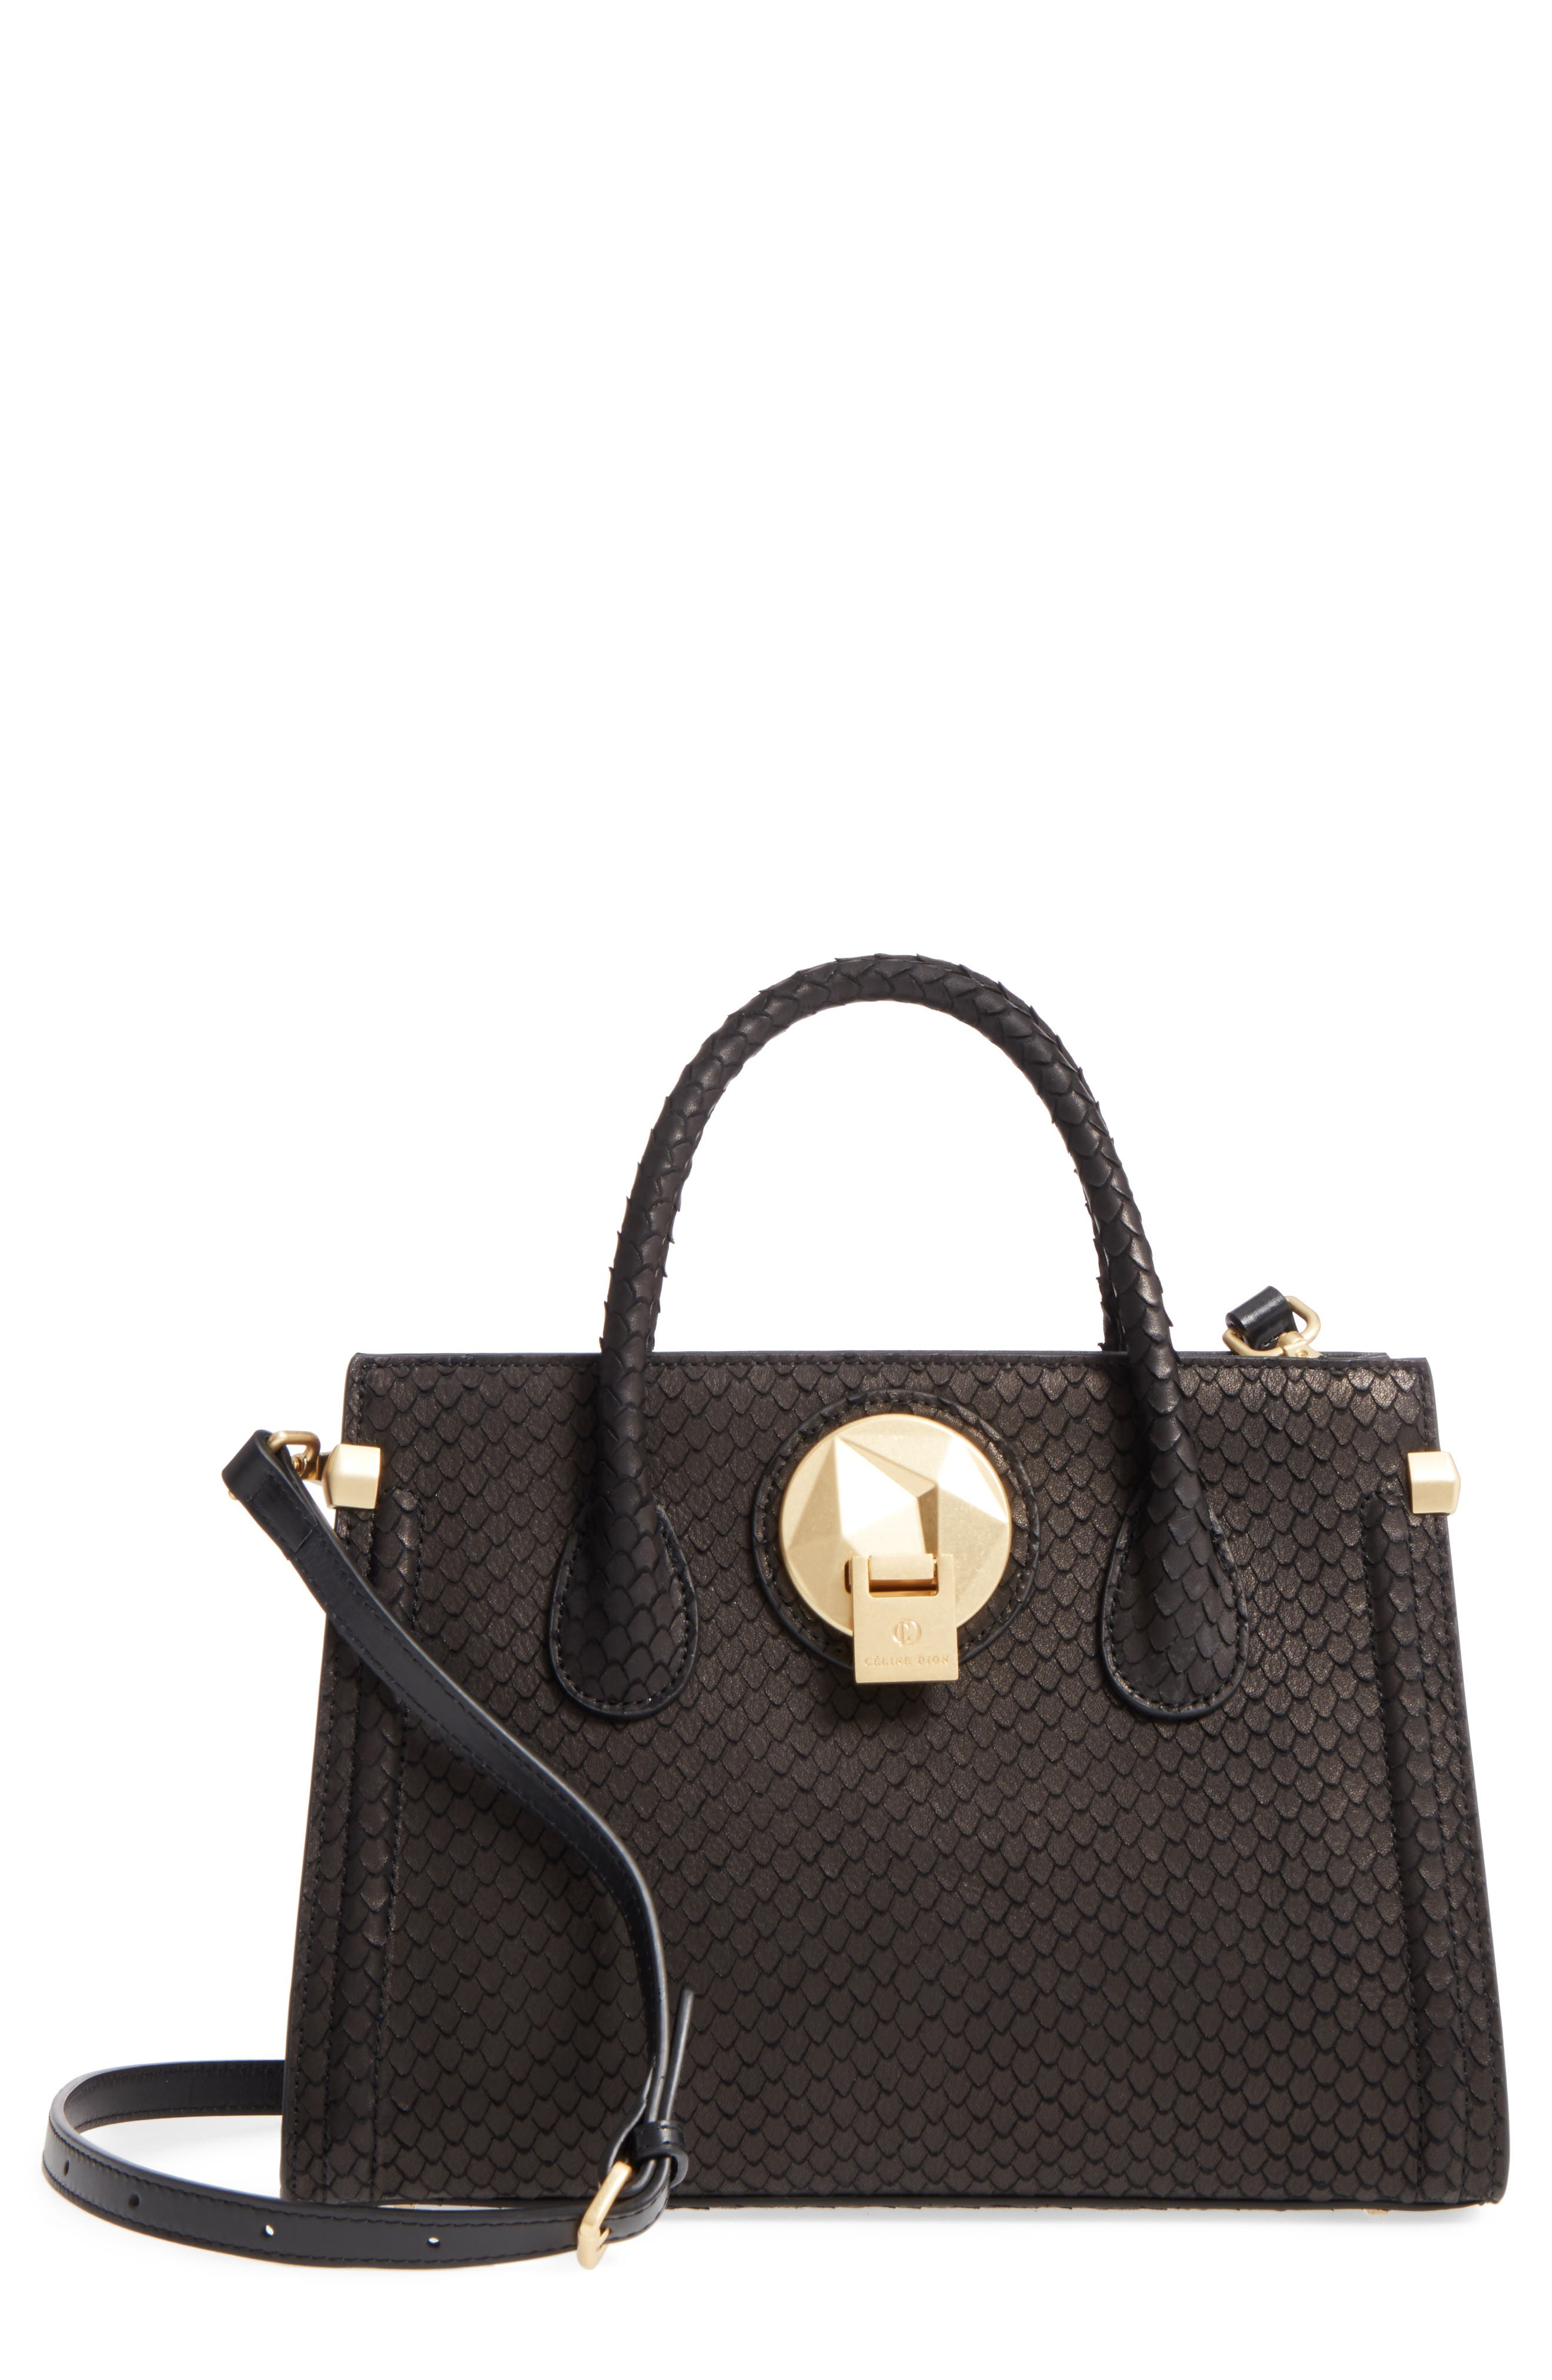 Céline Dion Octave Snake Embossed Leather Satchel,                         Main,                         color, Black Snake